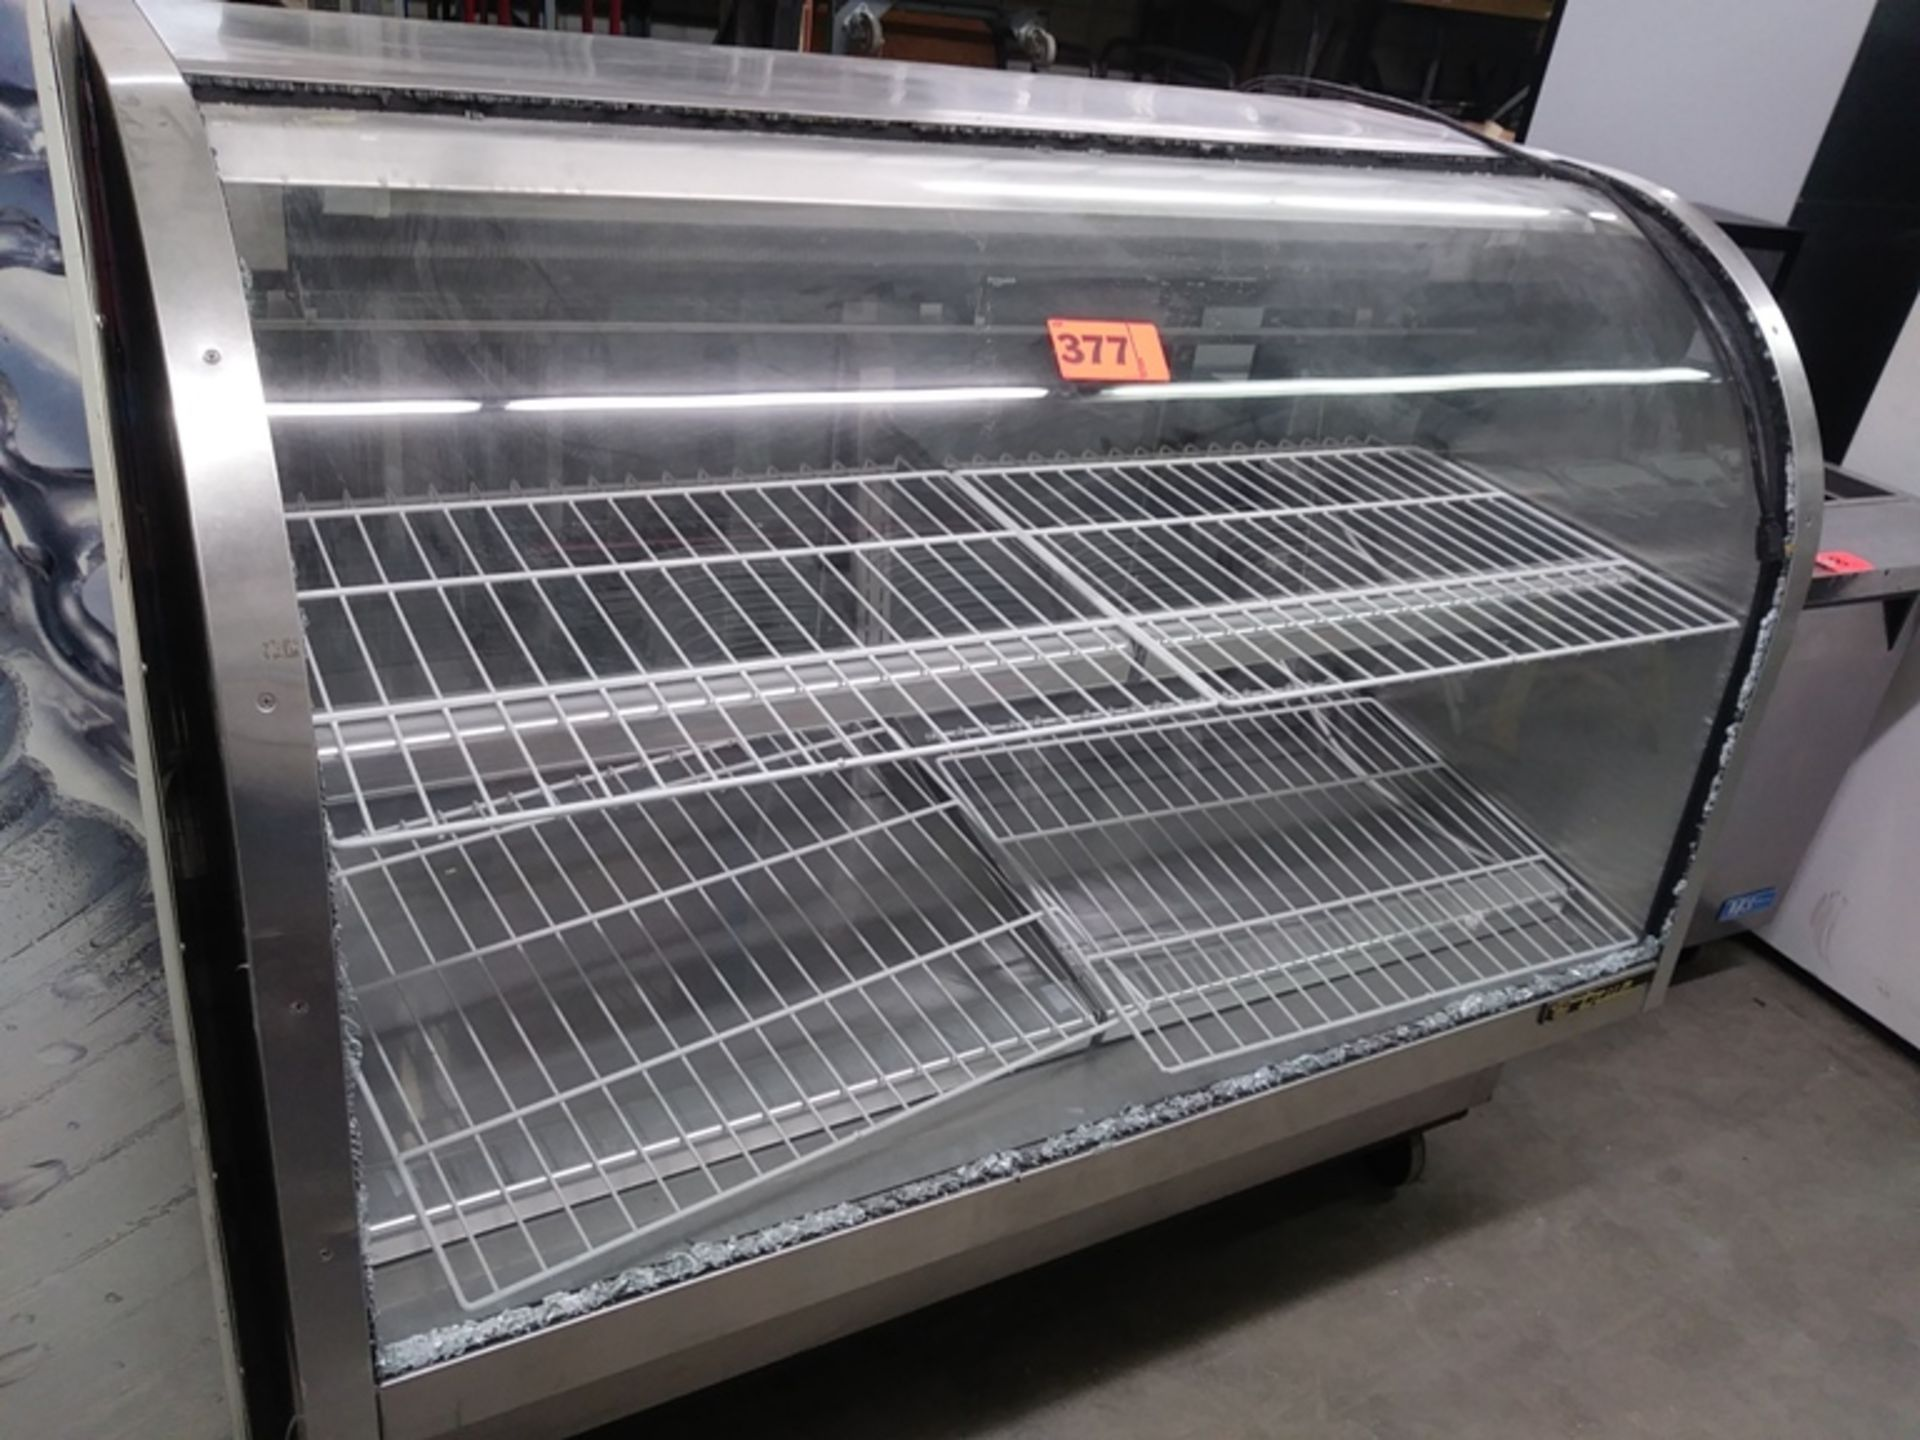 "Lot 377 - TRUE 5FT GLASS DELI CASE (TCGG 60S) ( 60"" L X 33"" D X 53"" H)"